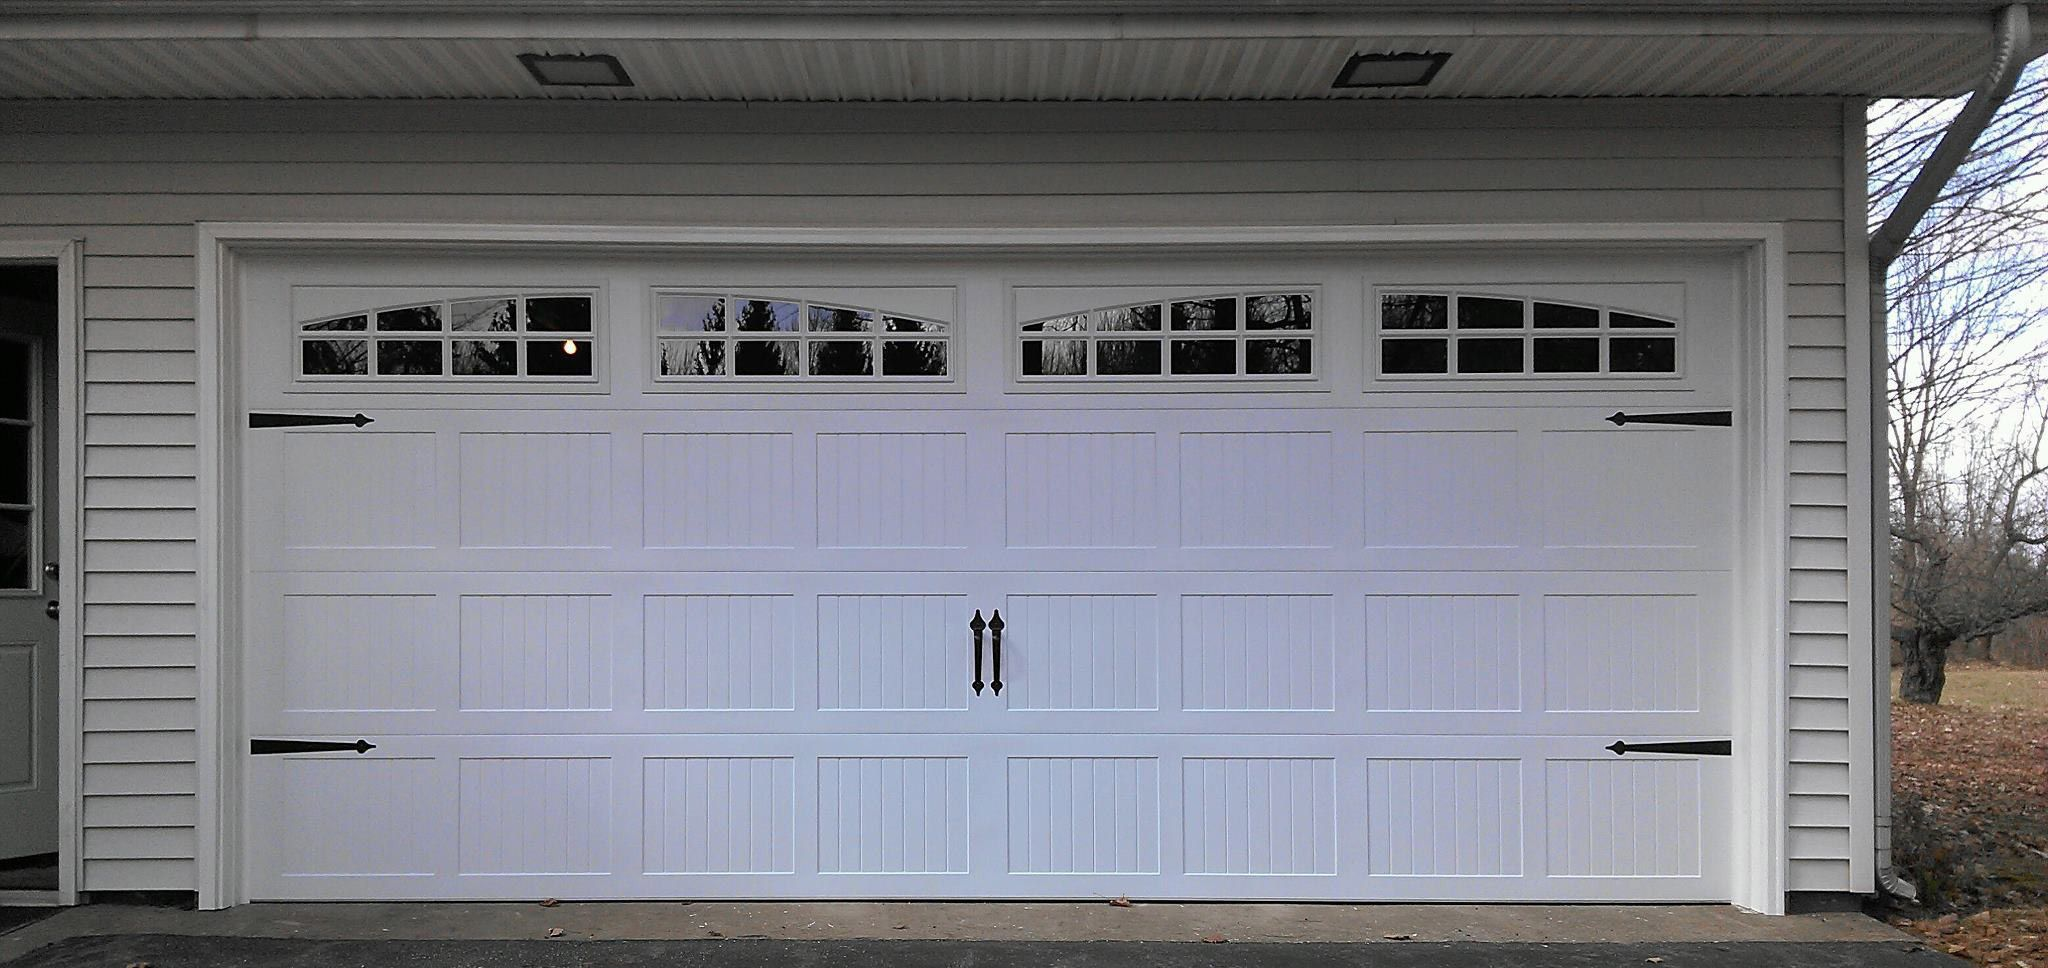 Garage Door Window Inserts Home Depot U2014 All About Home Ideas .